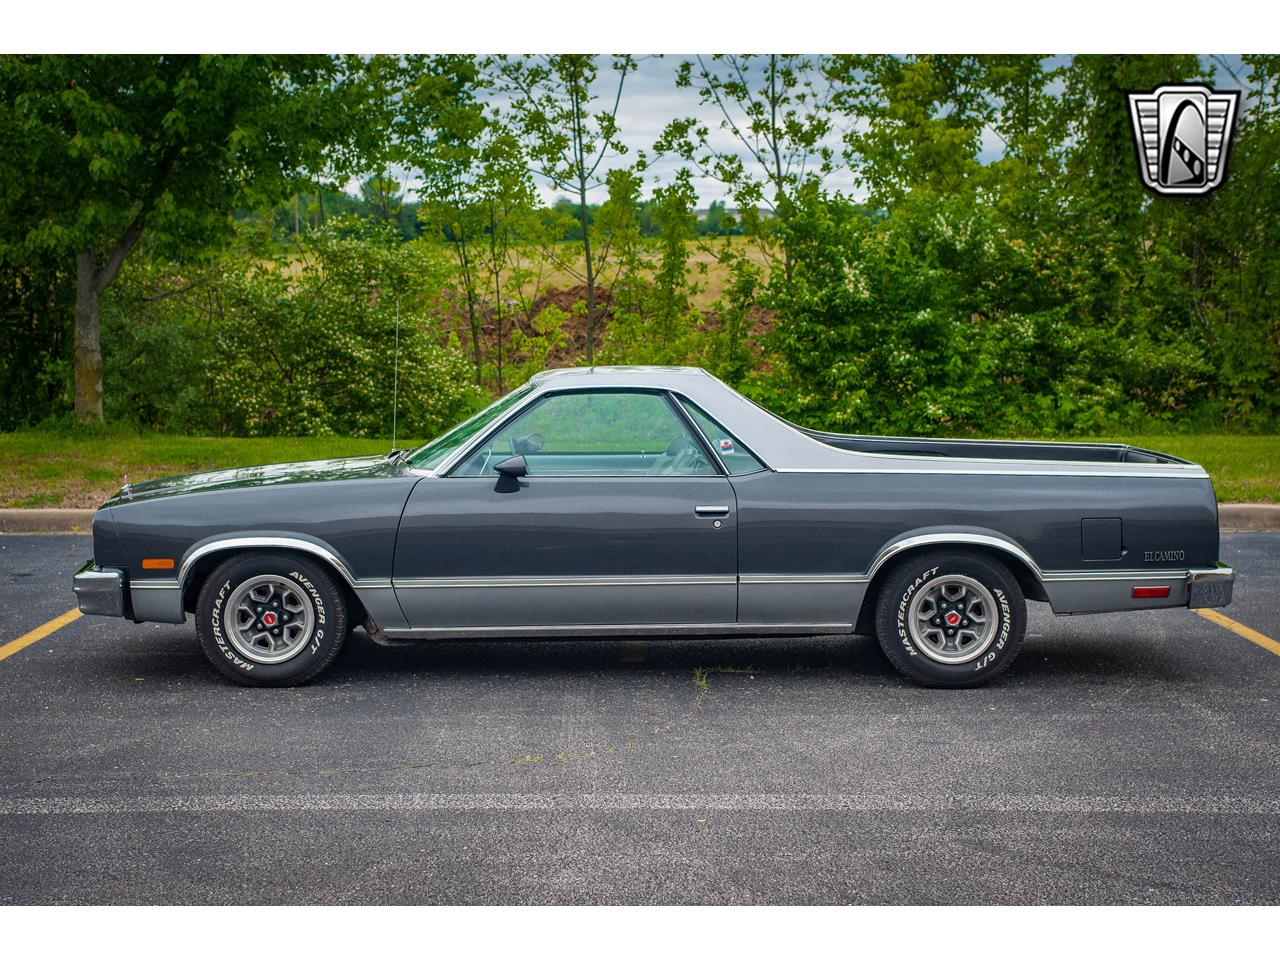 Large Picture of '82 Chevrolet El Camino located in Illinois Offered by Gateway Classic Cars - St. Louis - QB9A